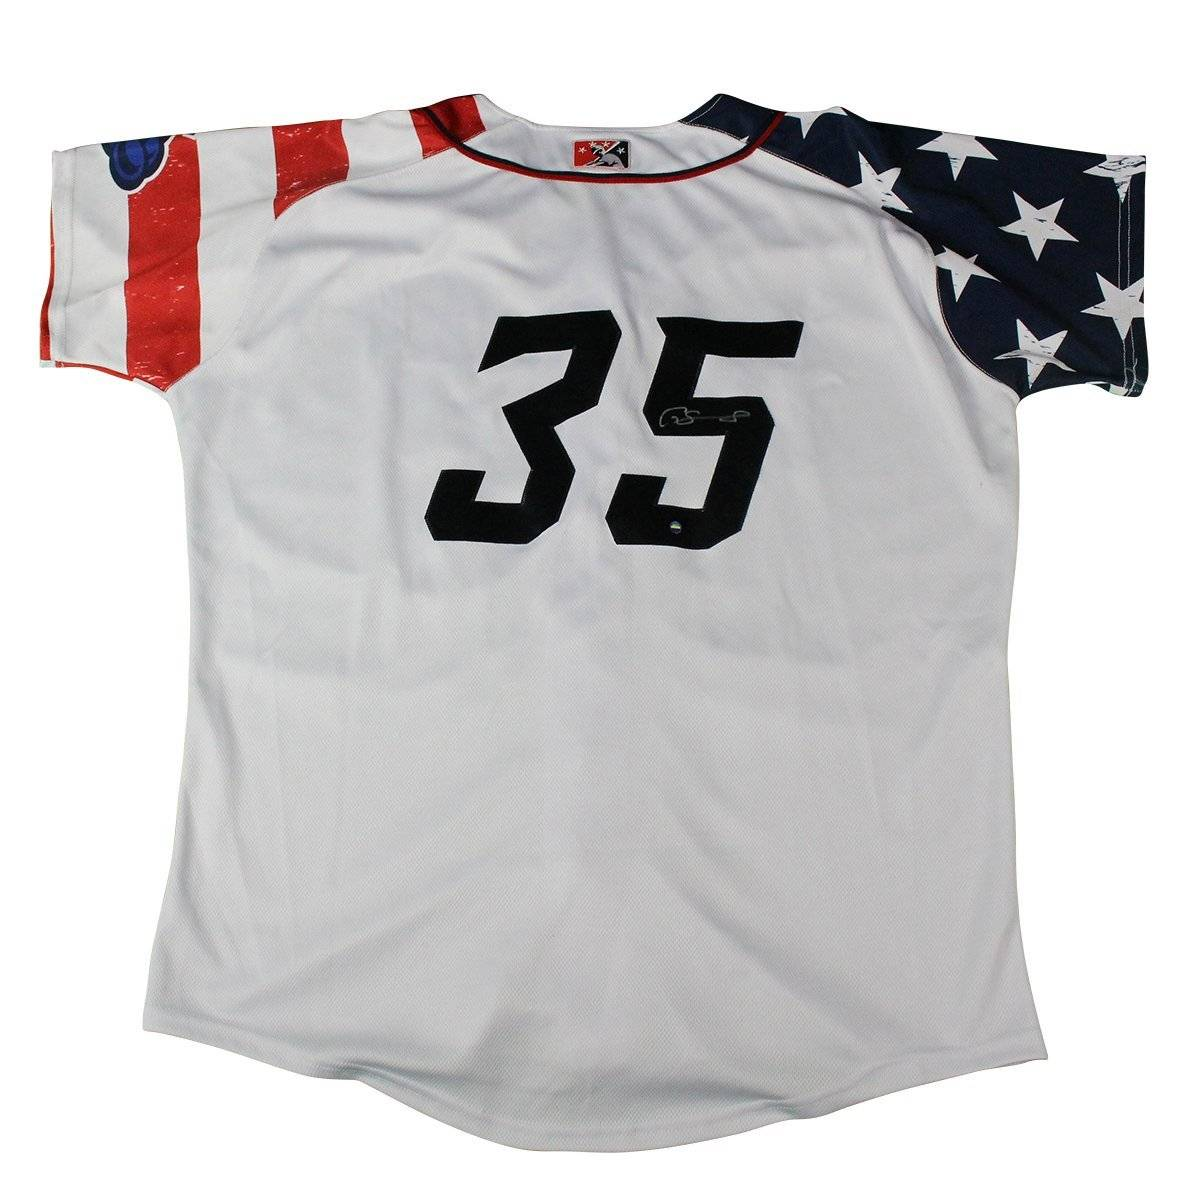 new arrival af4b4 88b2a New York Yankees Gary Sanchez Signed Game Used 2015 Trenton 4th of July  Jersey